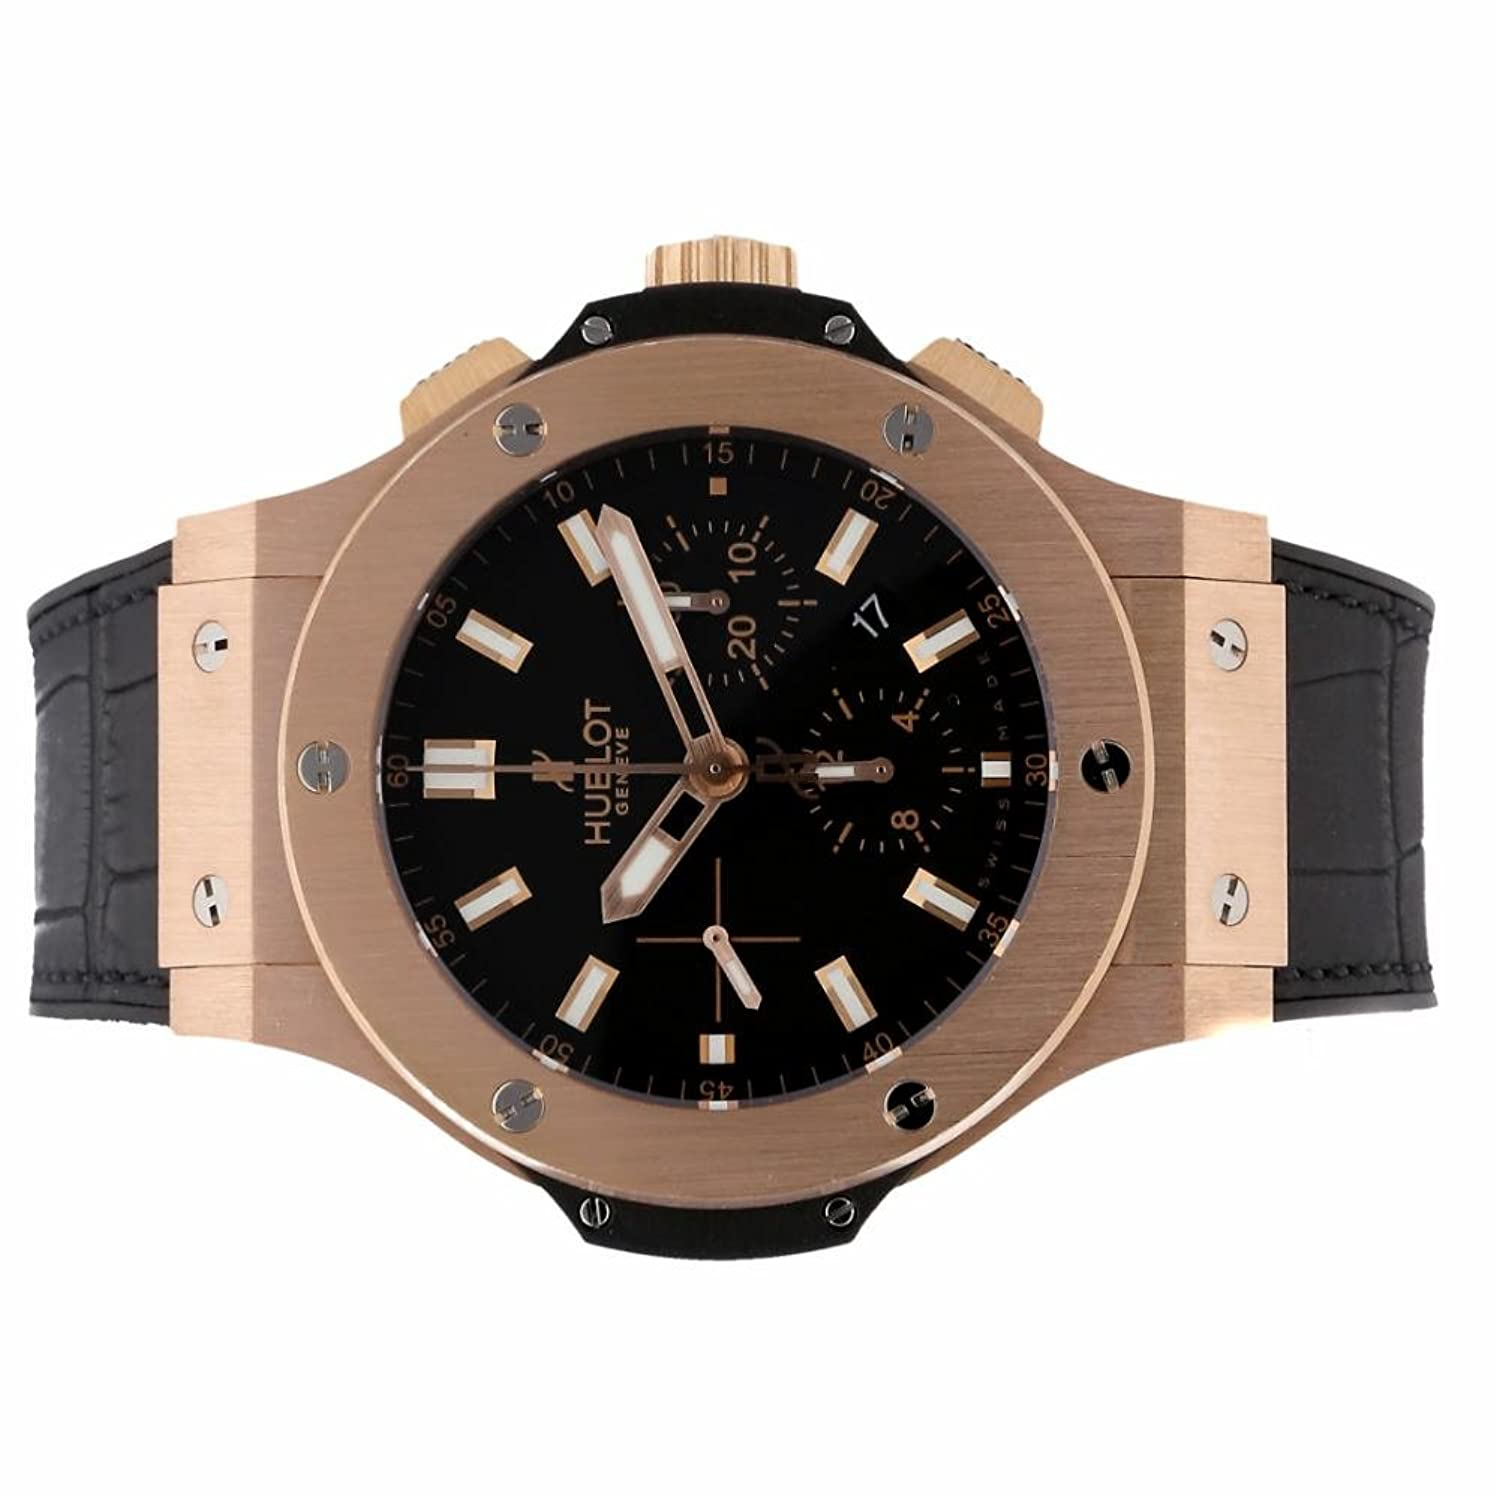 Amazon.com: Hublot Big Bang automatic-self-wind mens Watch 301.PX.1180.RX (Certified Pre-owned): Hublot: Watches